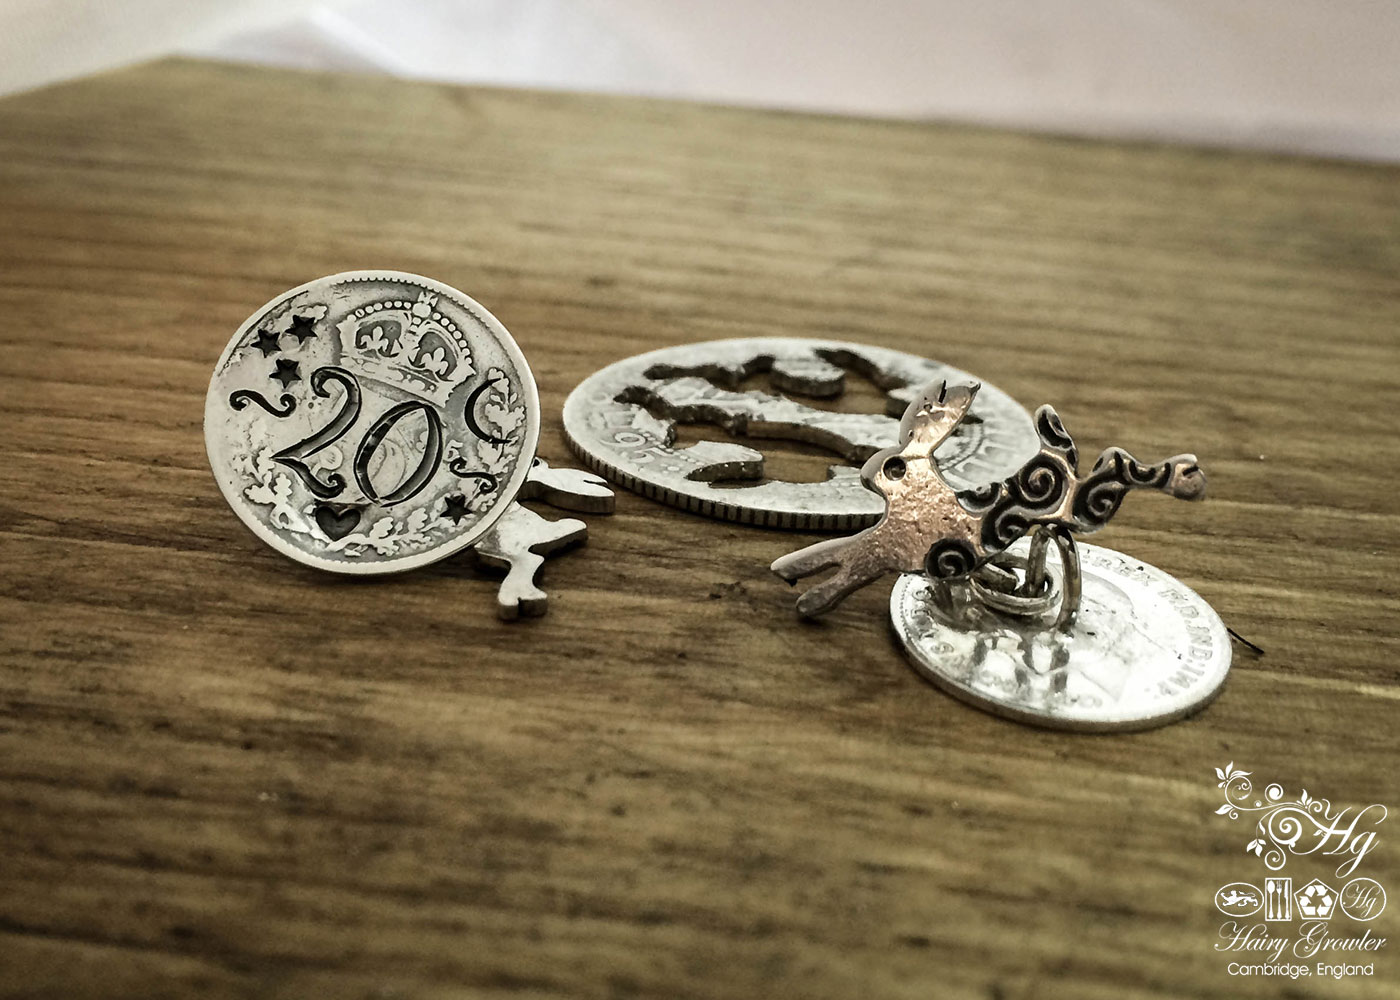 Magical leaping hare cufflinks handmade and upcycled from sterling silver shillings and threepence coins